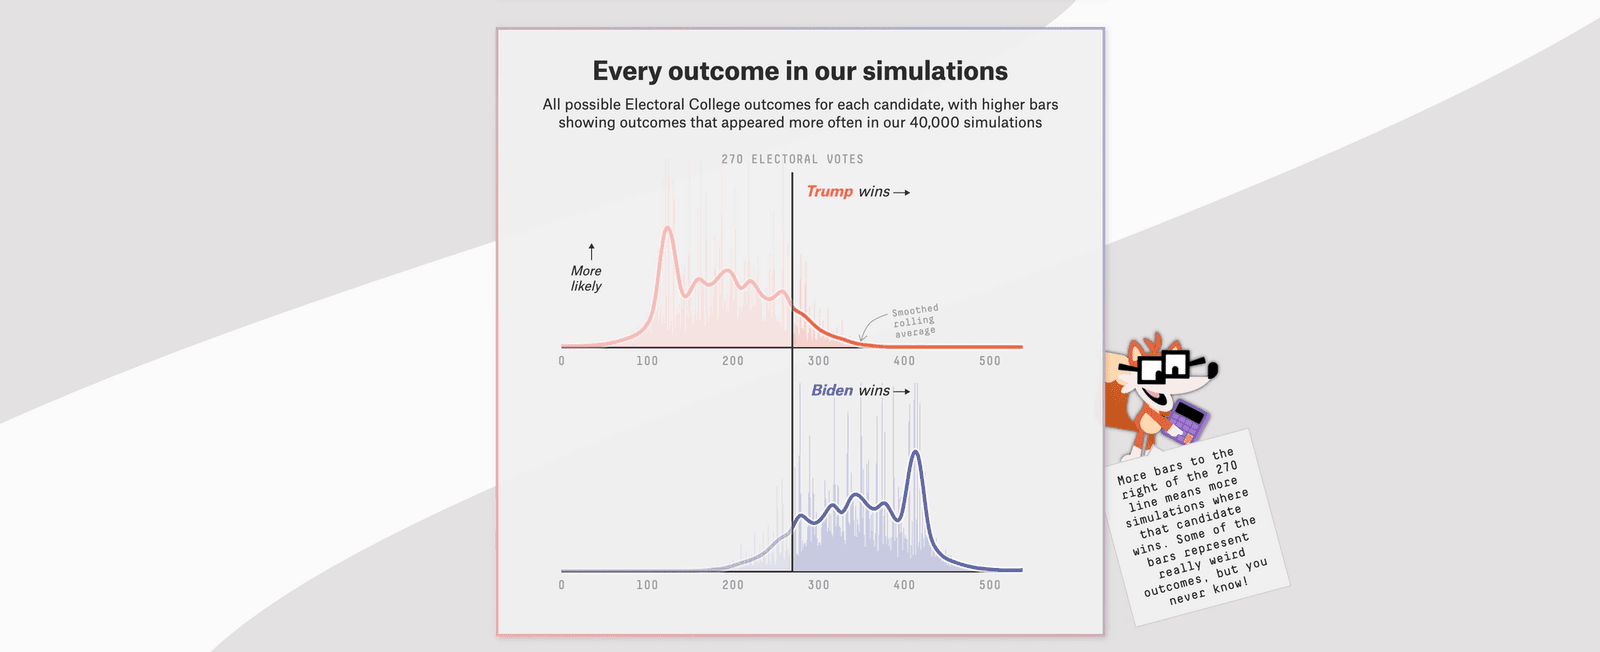 Two FiveThirtyEight election forecast simulations: Electoral college vote distribution for Trump, who wins in 10.4% of simulated outcomes. And Electoral college vote distribution for Biden, who wins in 89.2% of simulated outcomes.